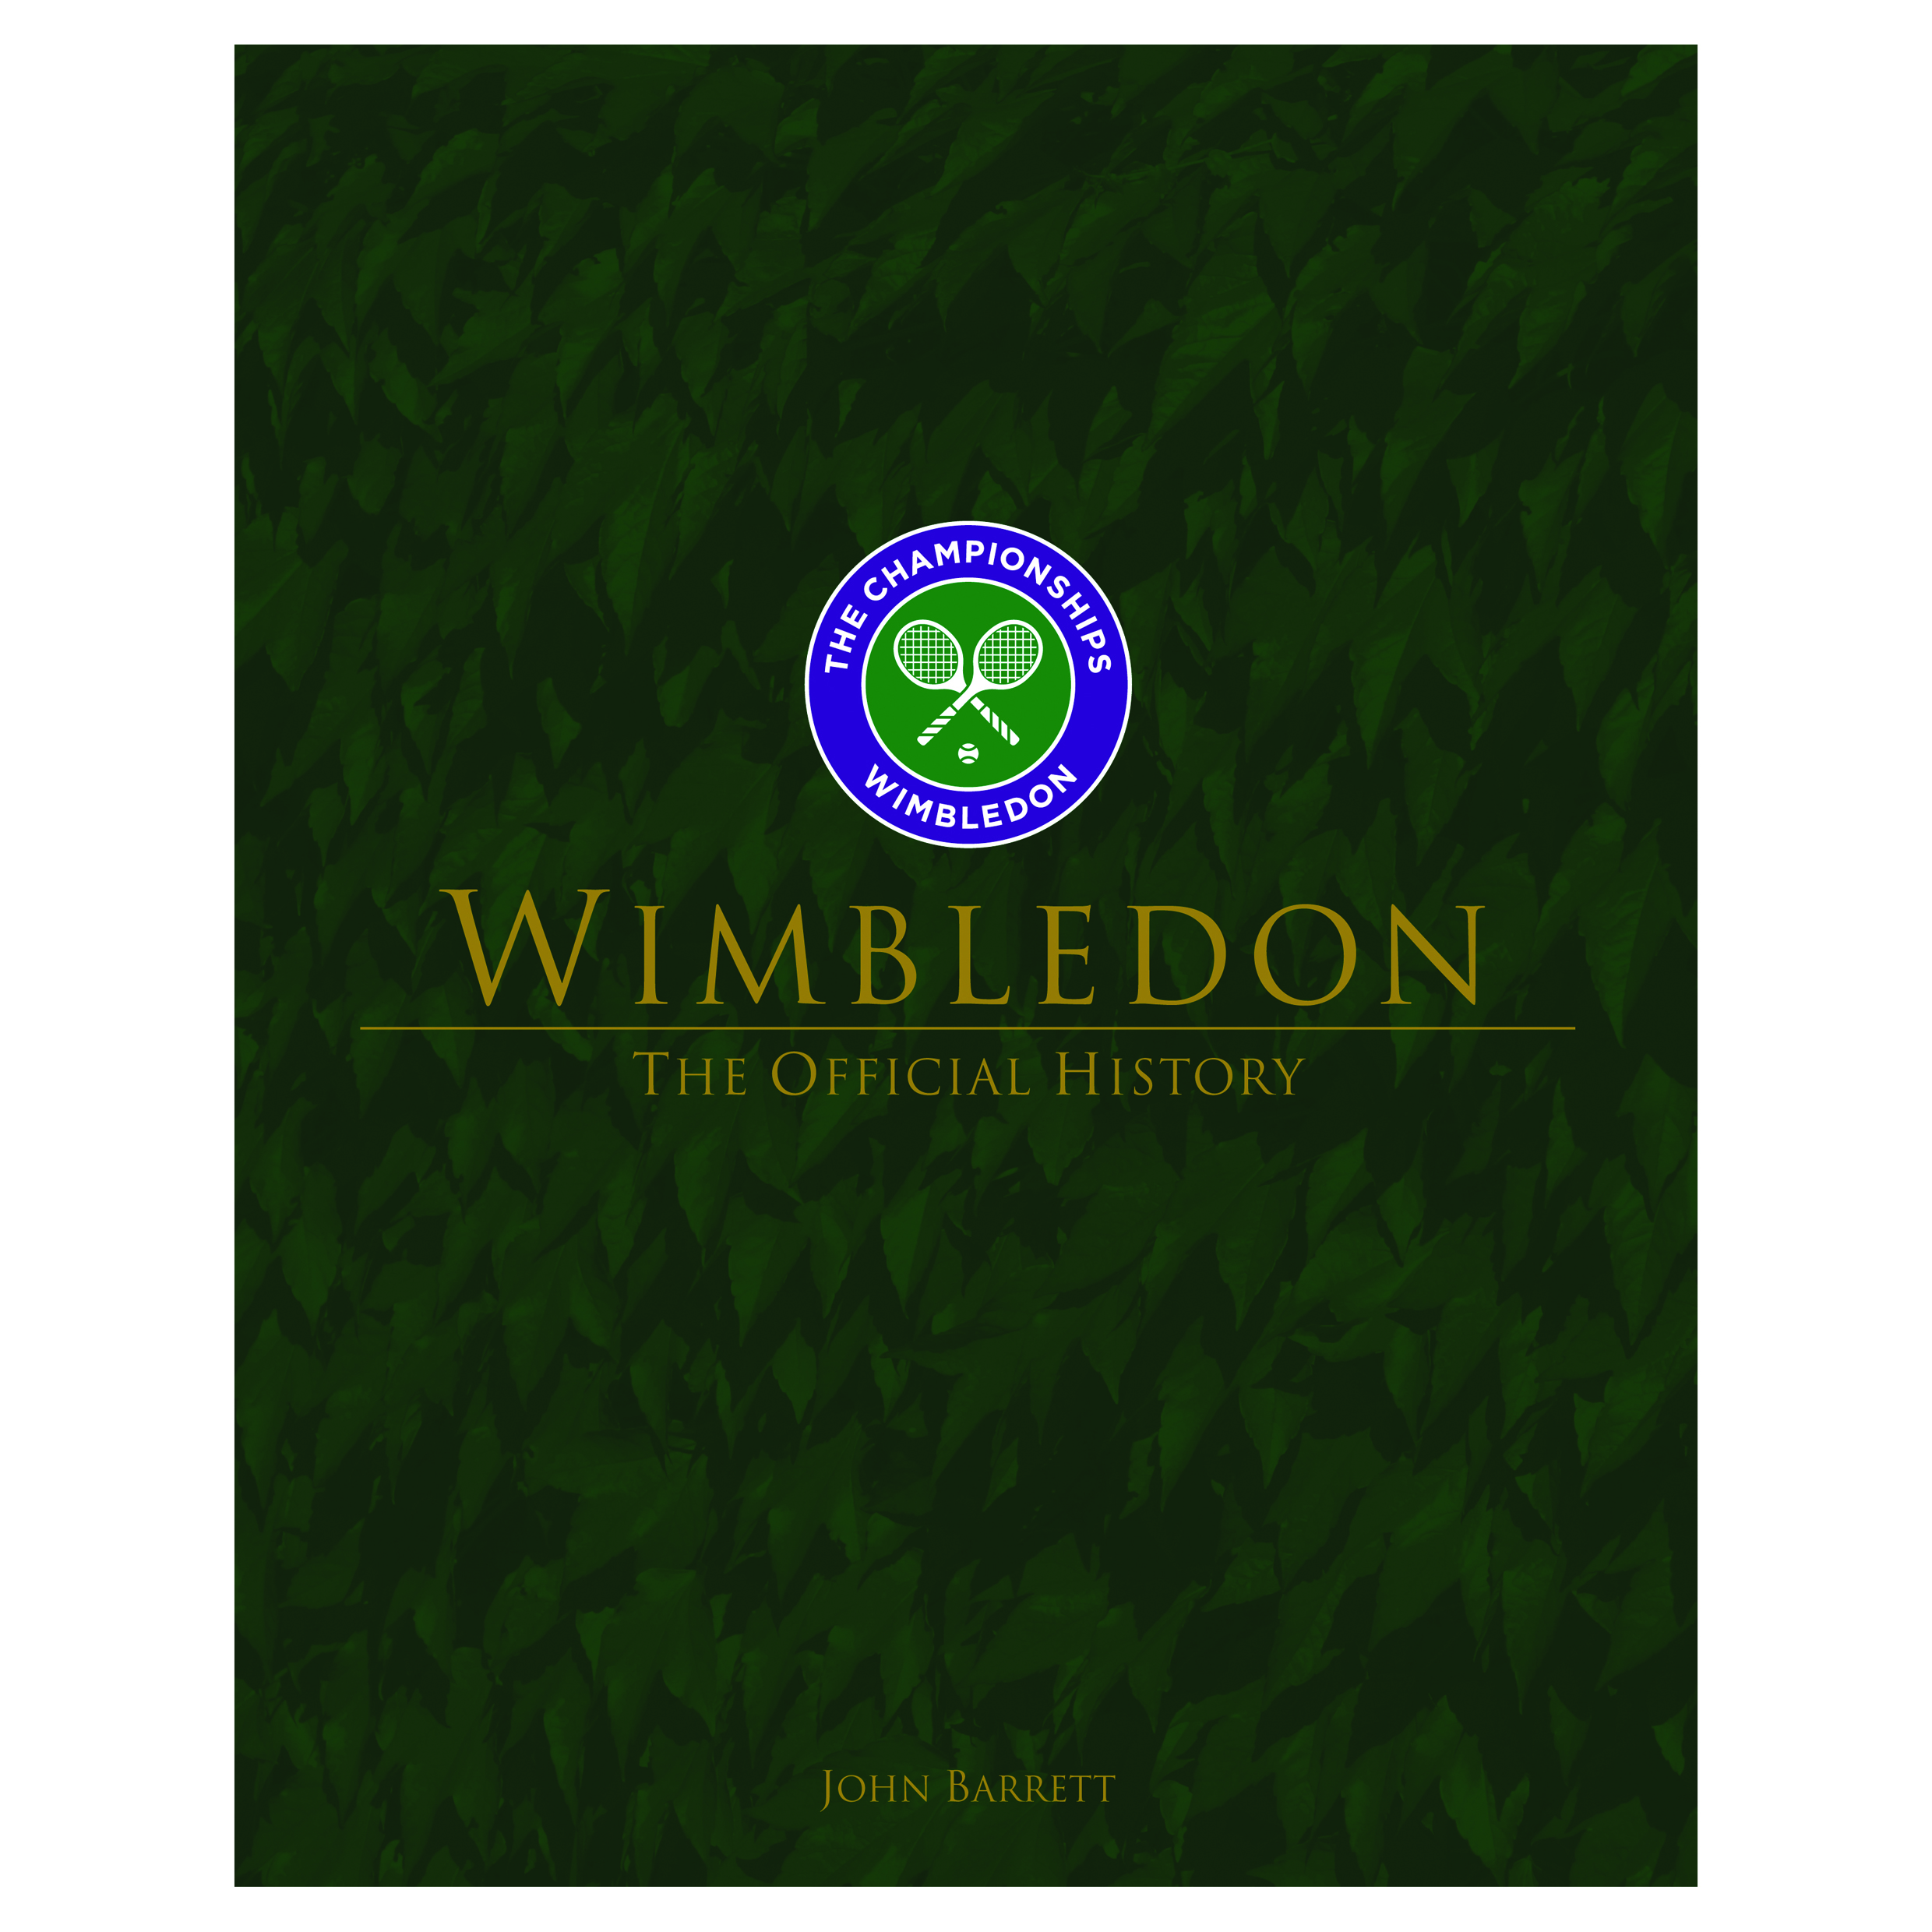 Wimbledon The Official History